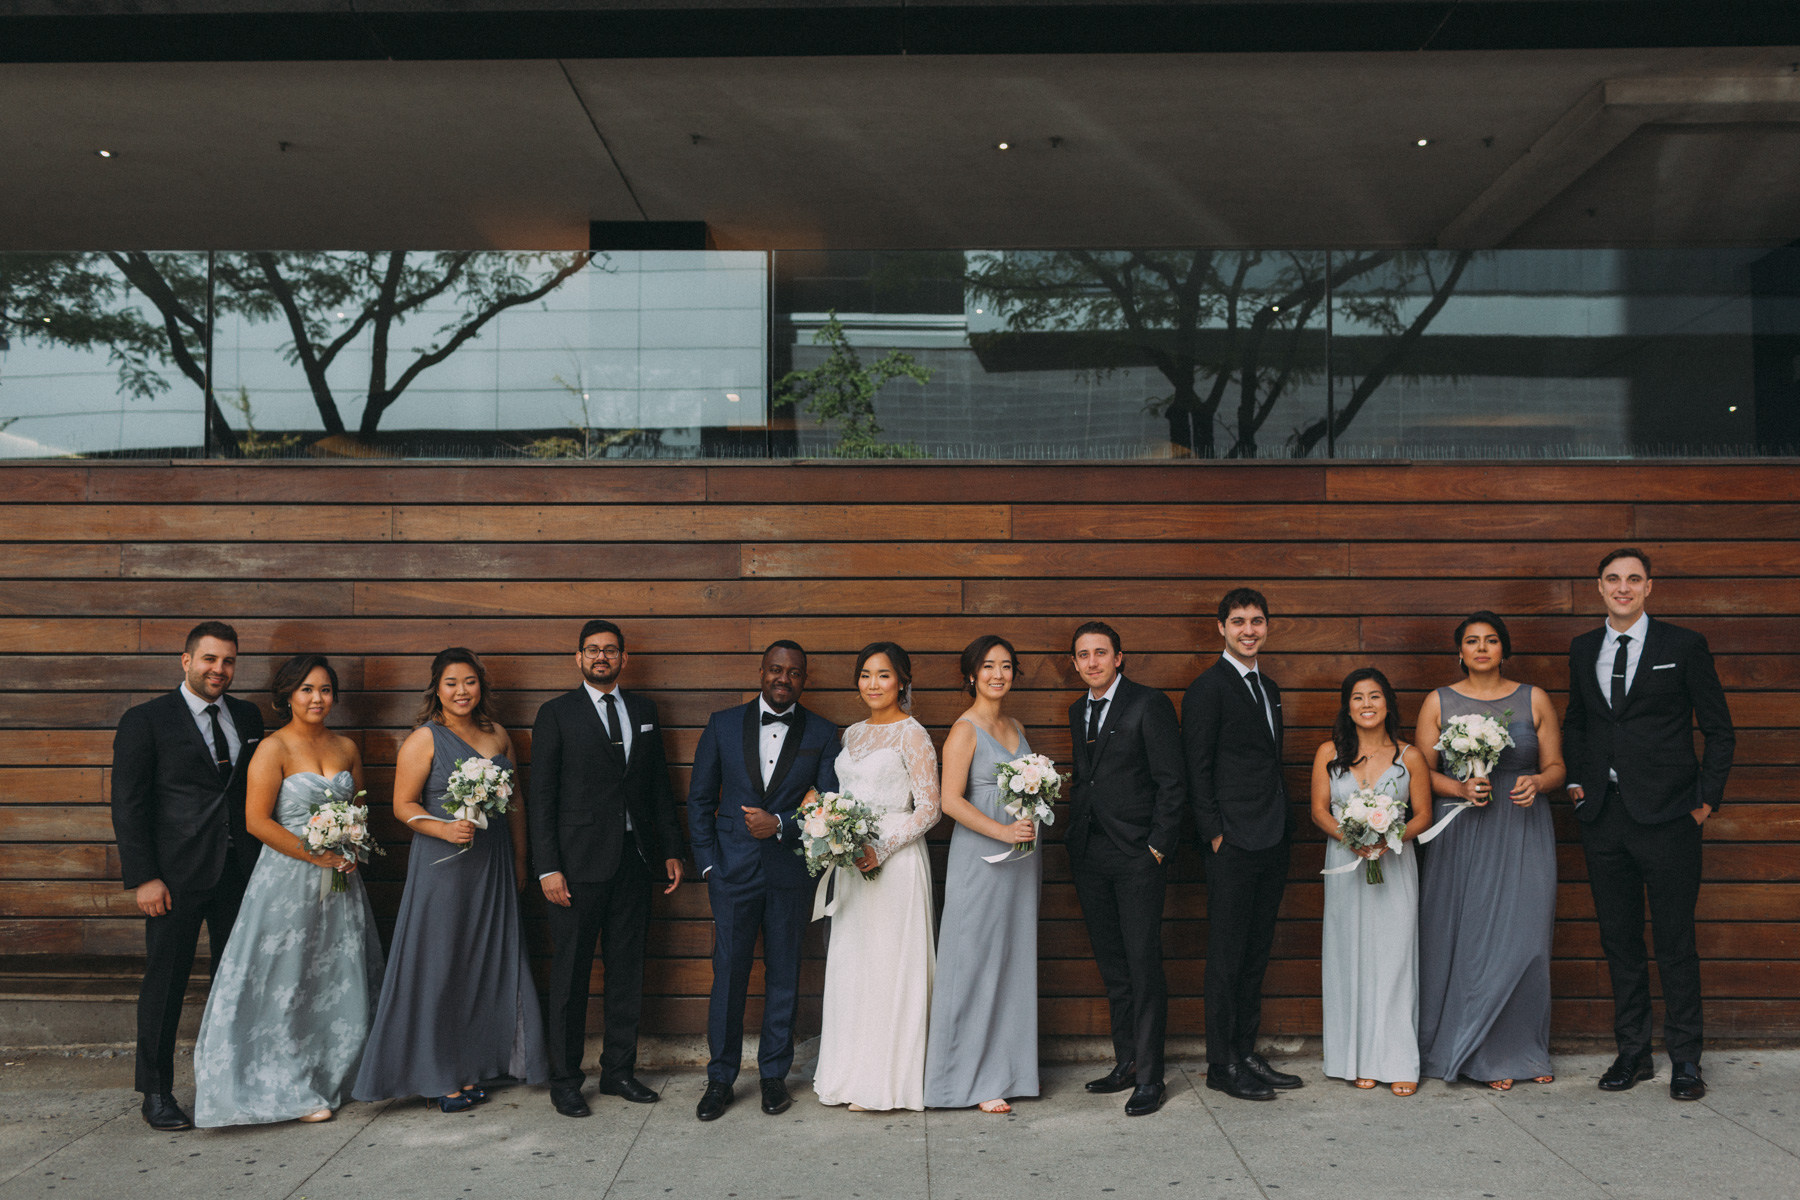 Malaparte-wedding-photography-Toronto-by-Sam-Wong-of-Artanis-Collective-Mary-Anne-Bourne_021.jpg